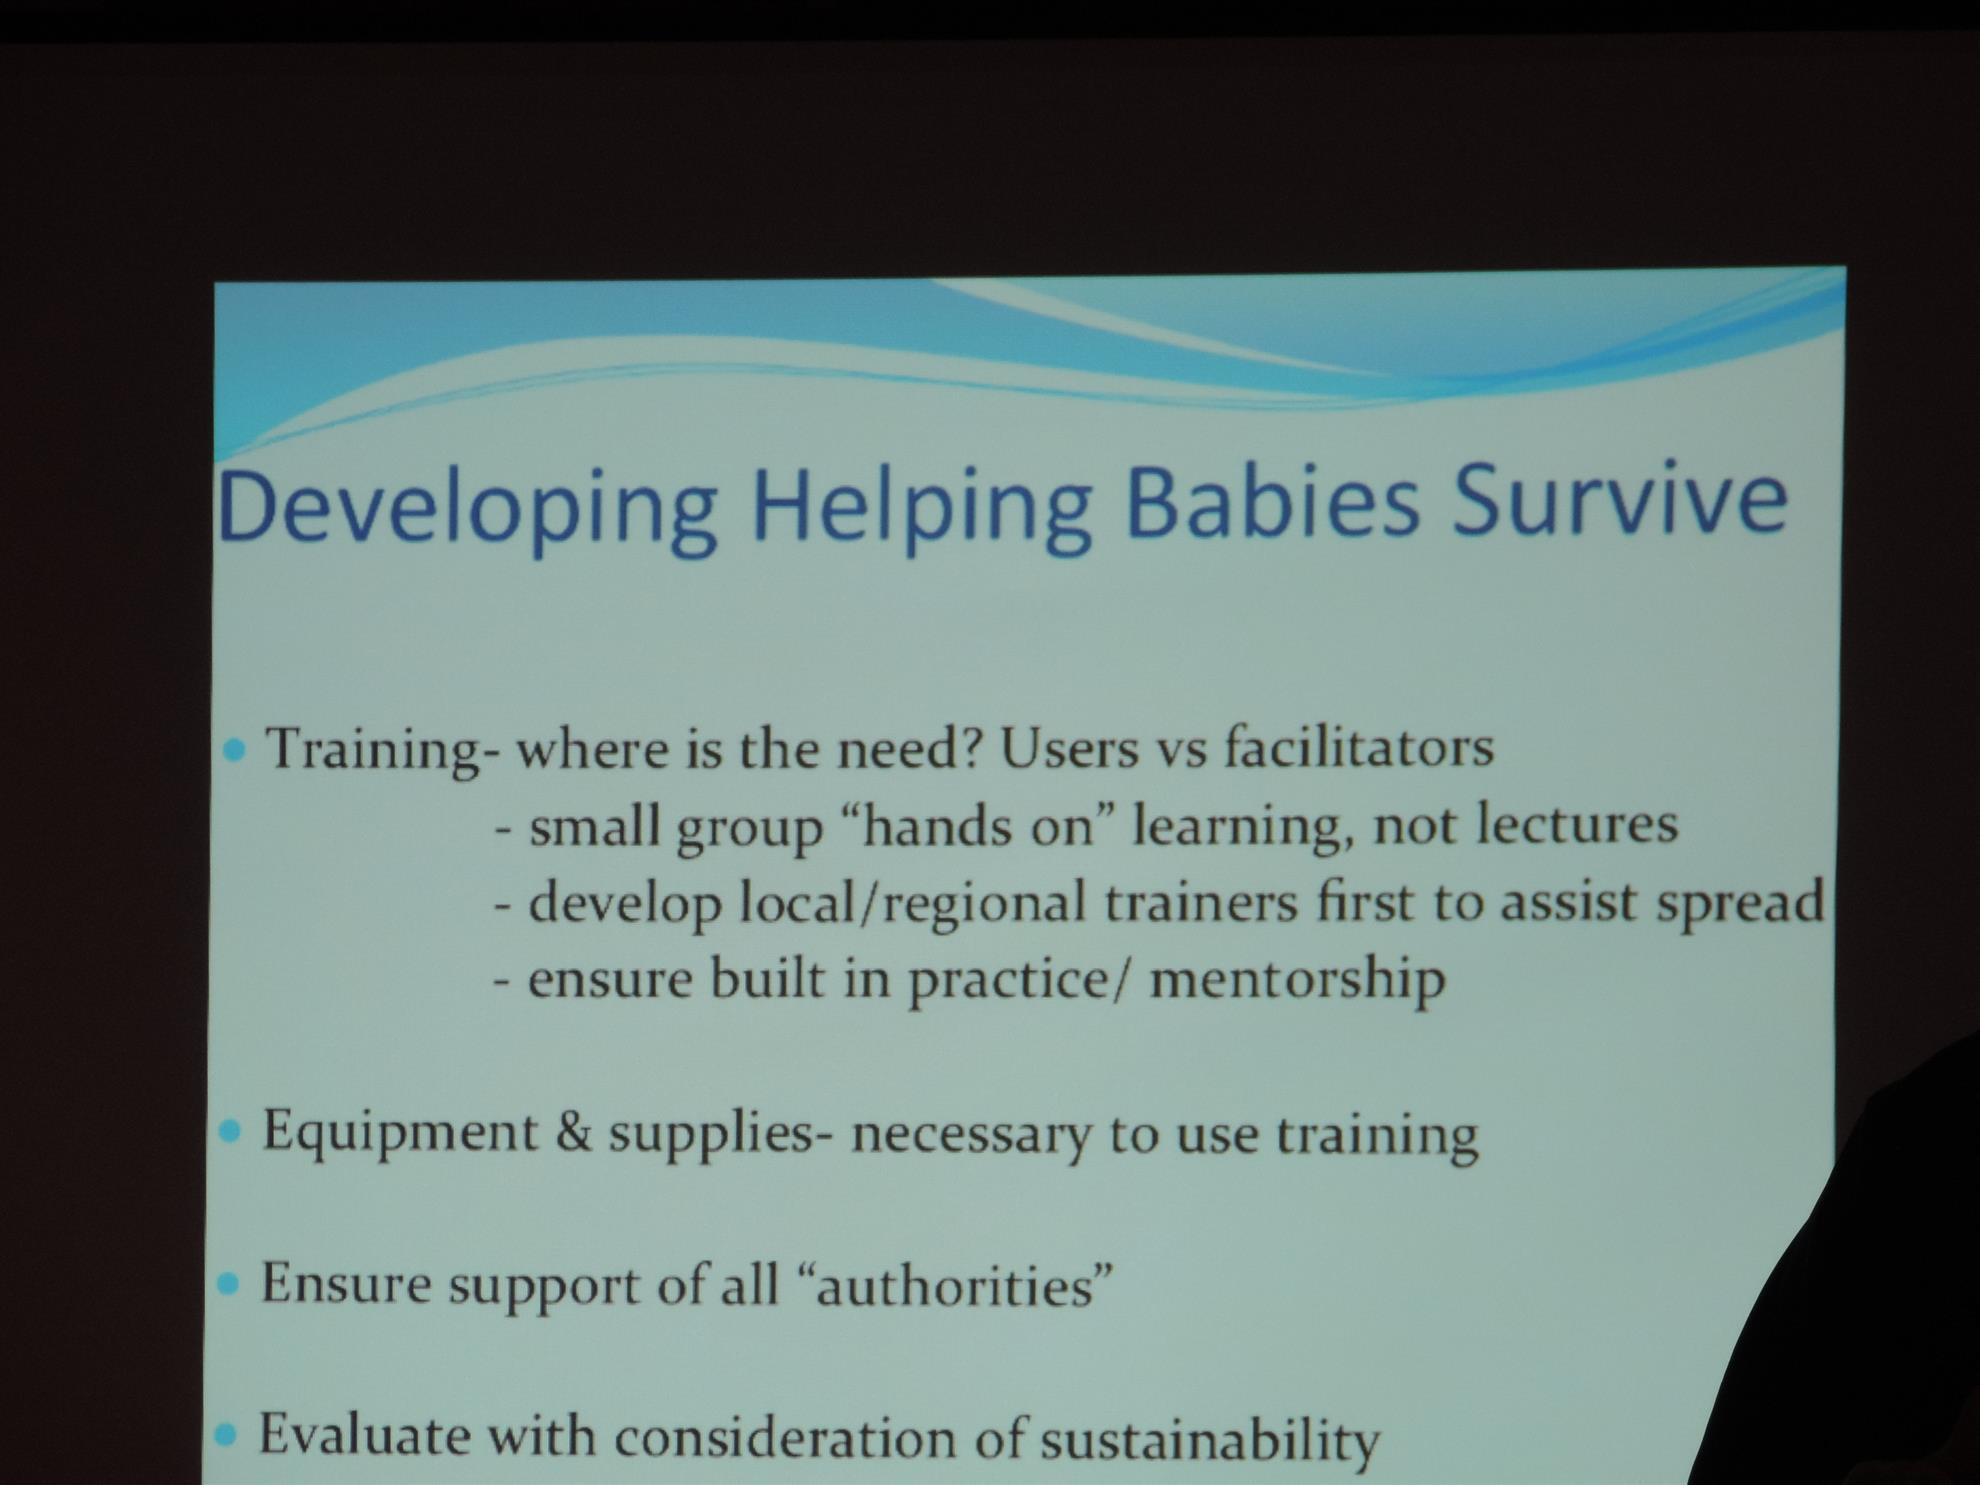 Stories Rotary Club Of Kentville District 7820 Choppers Australia O View Topic Electrics And Relays Doug Shared That This Project Falls Under One The 6 Pillars Womens Health Training To Help Babies Breath In Underdeveloped Areas Africa